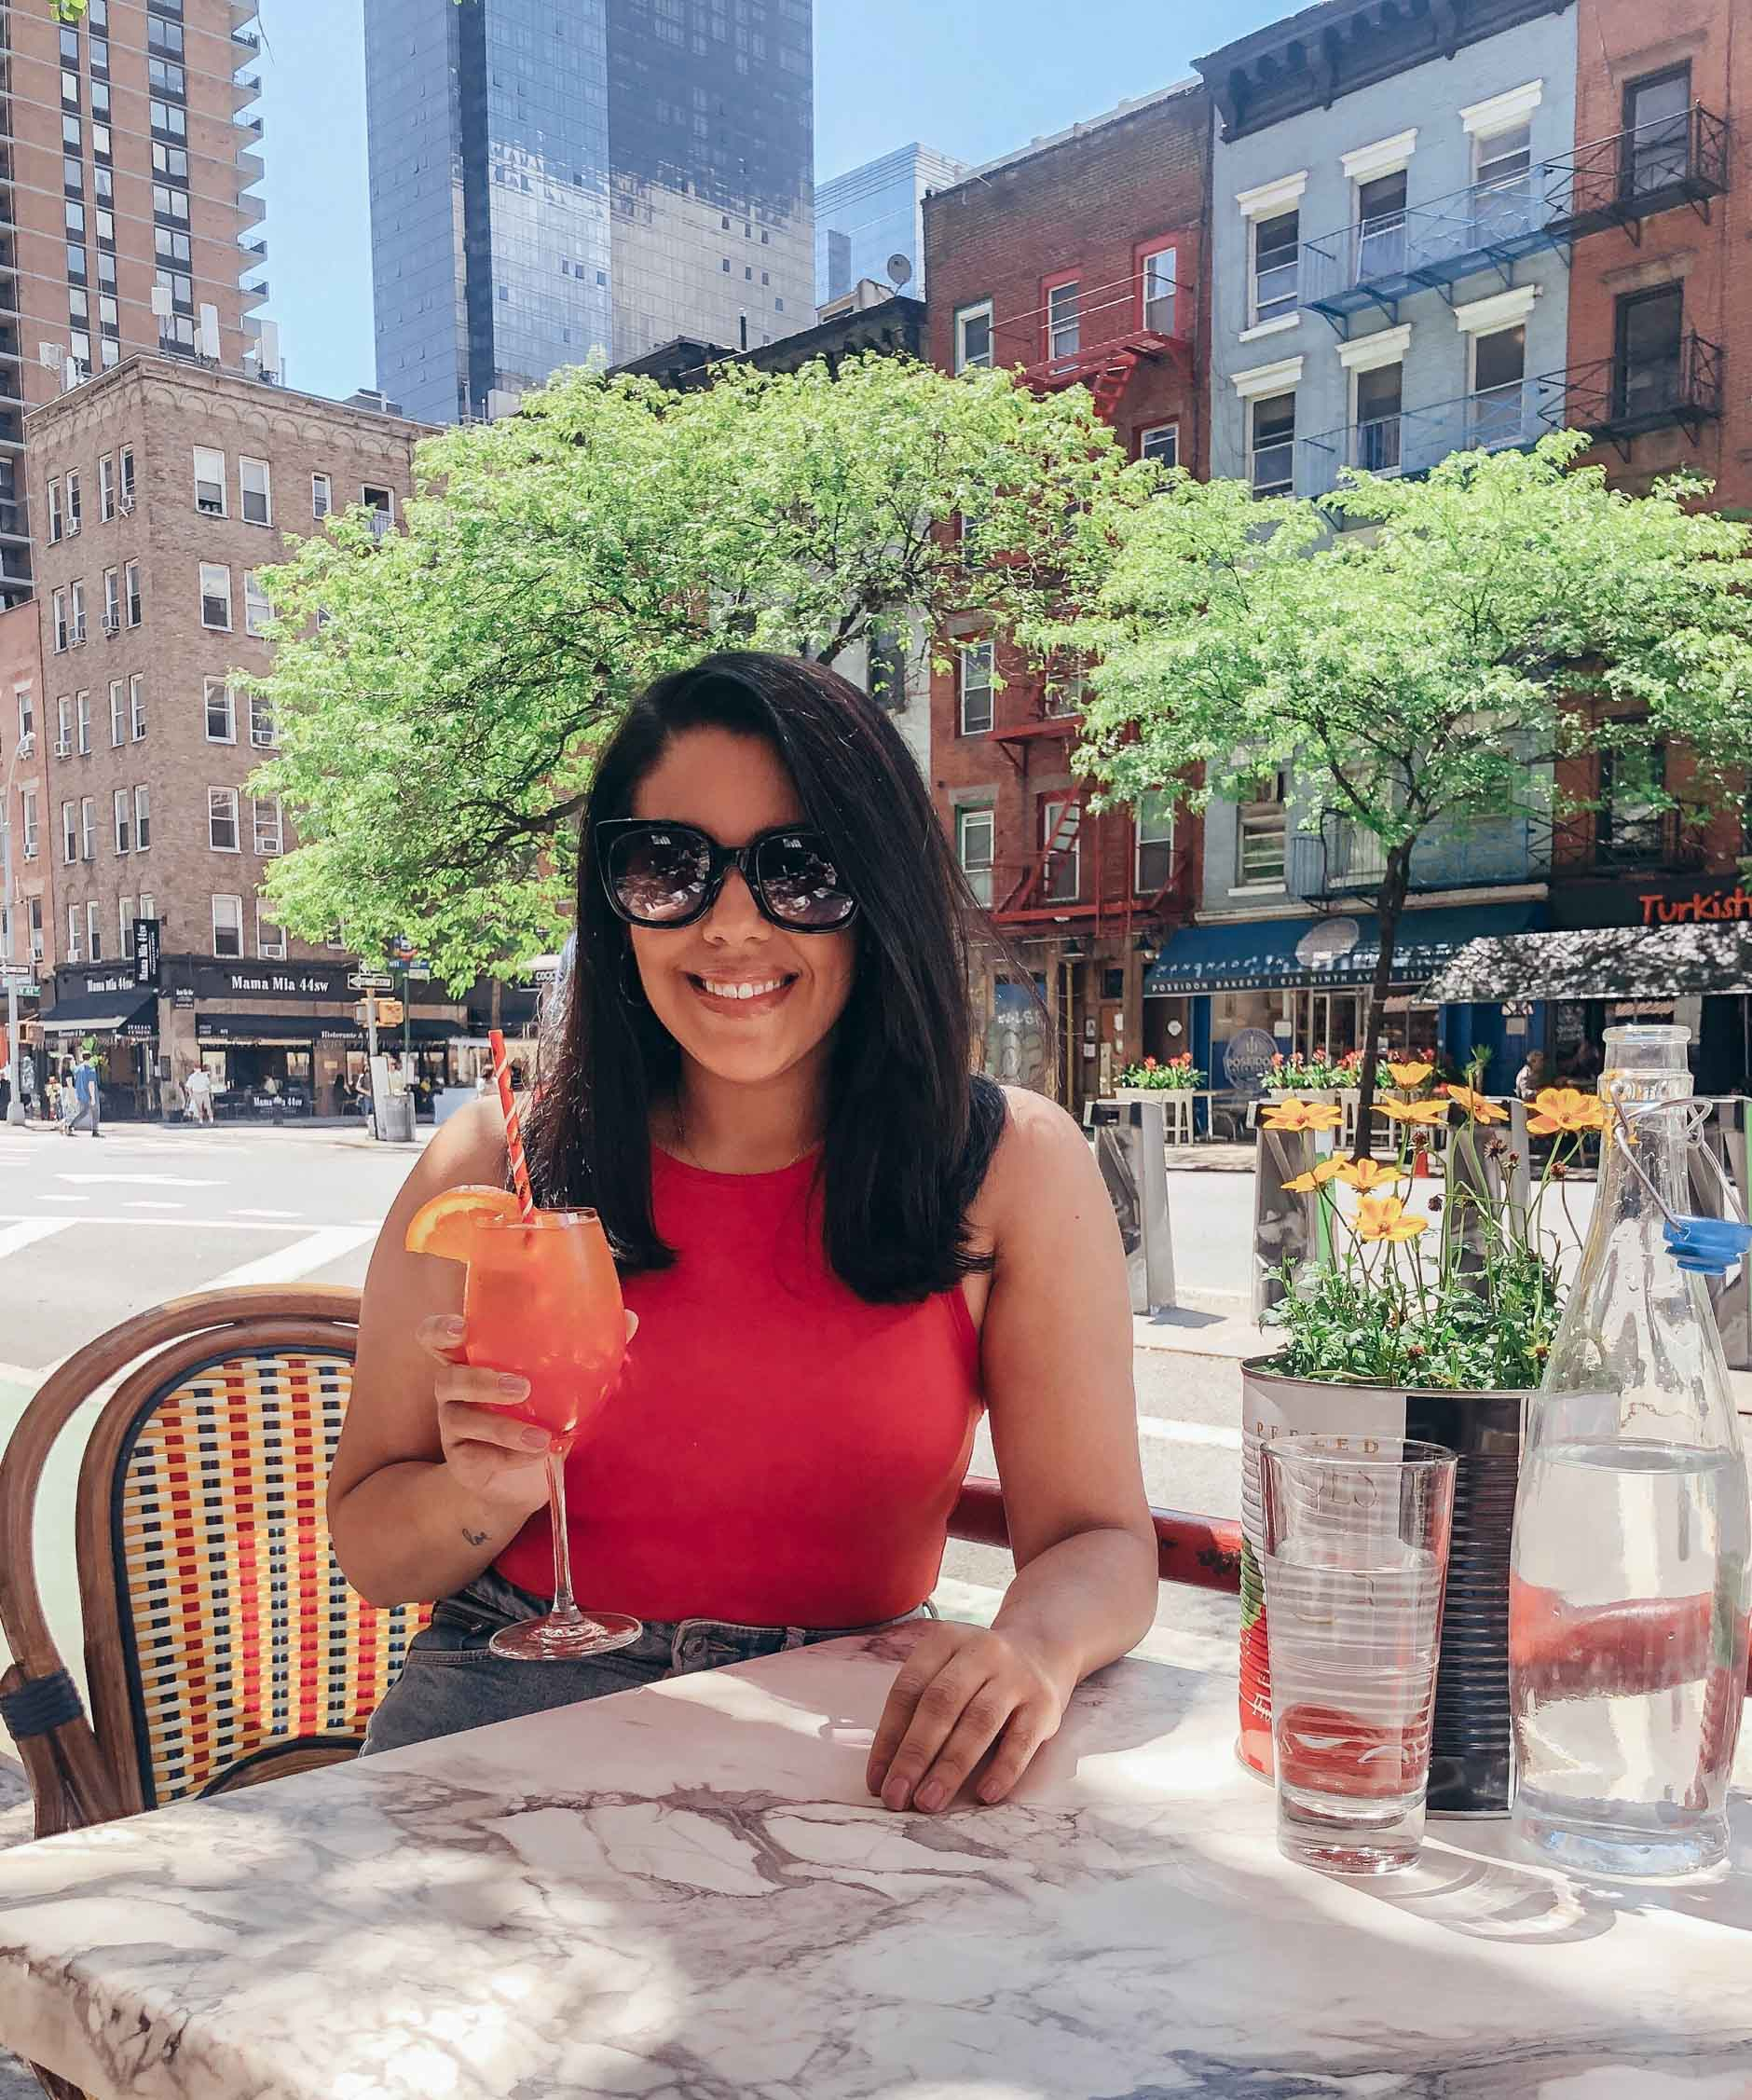 naty michele in nyc with an aperol spritz on a solo date